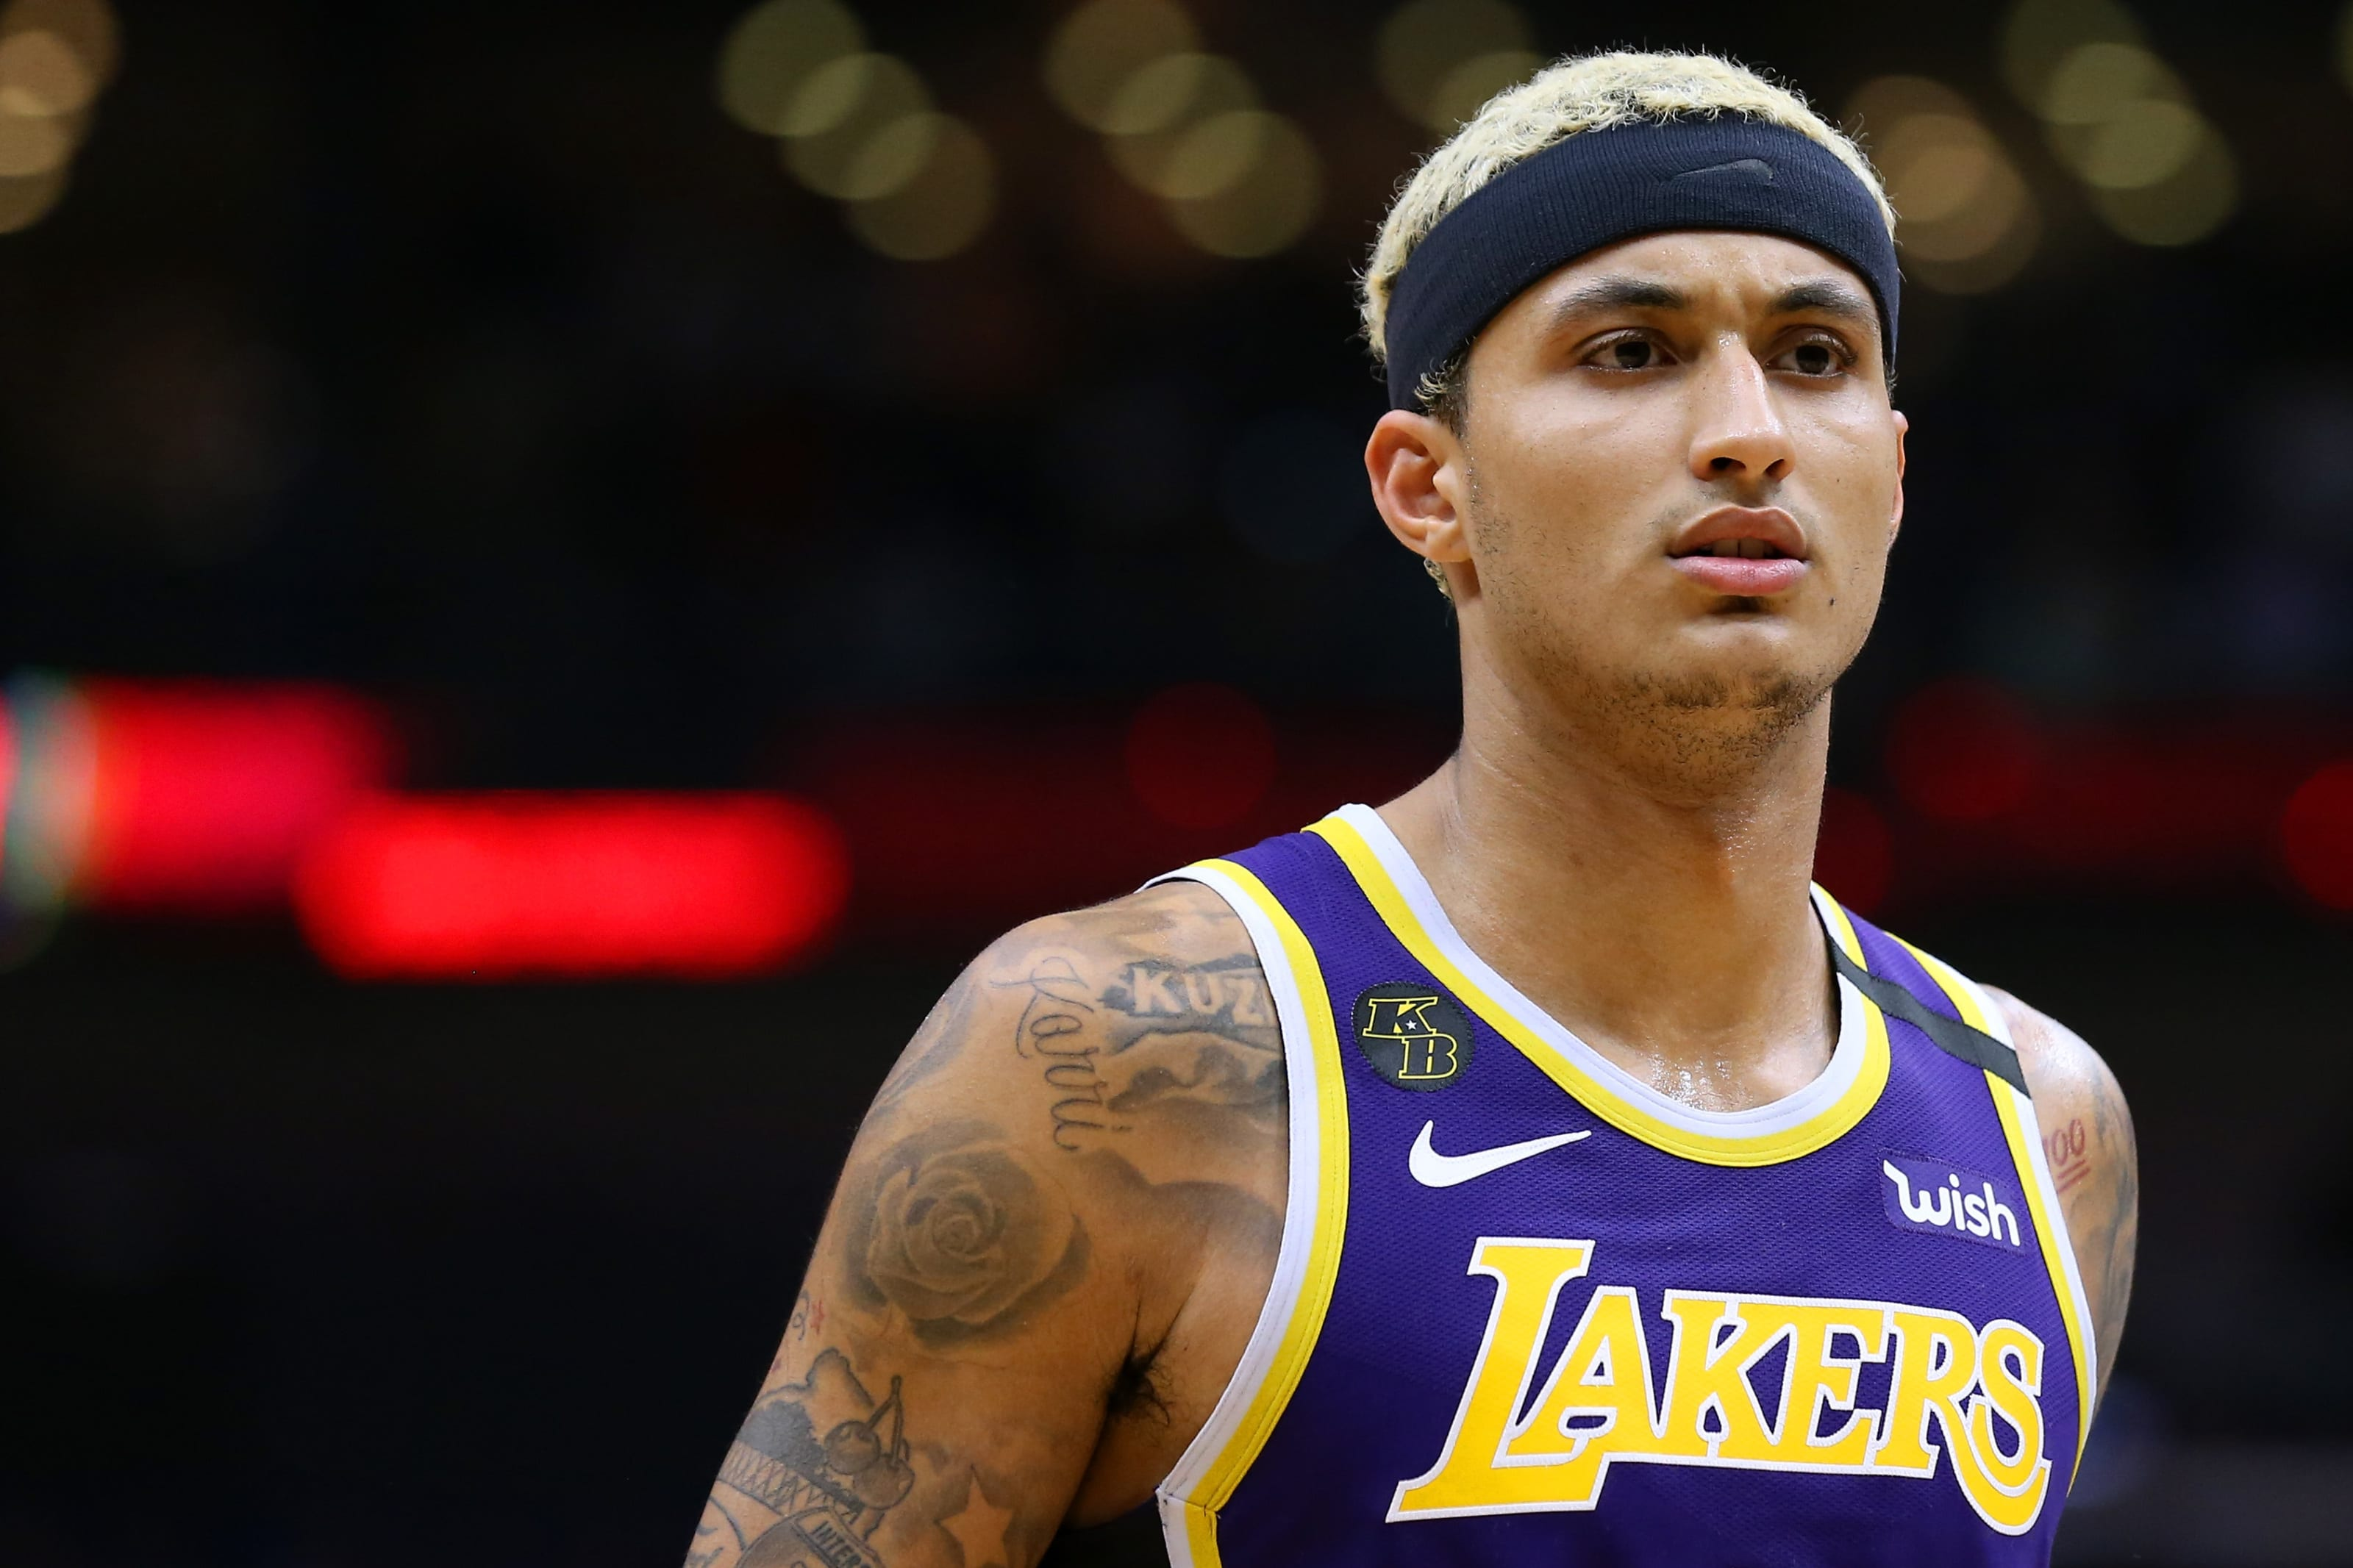 Nba 2020-2022 Christmas Jerseys Los Angeles Lakers: Why the Lakers will trade their first round pick